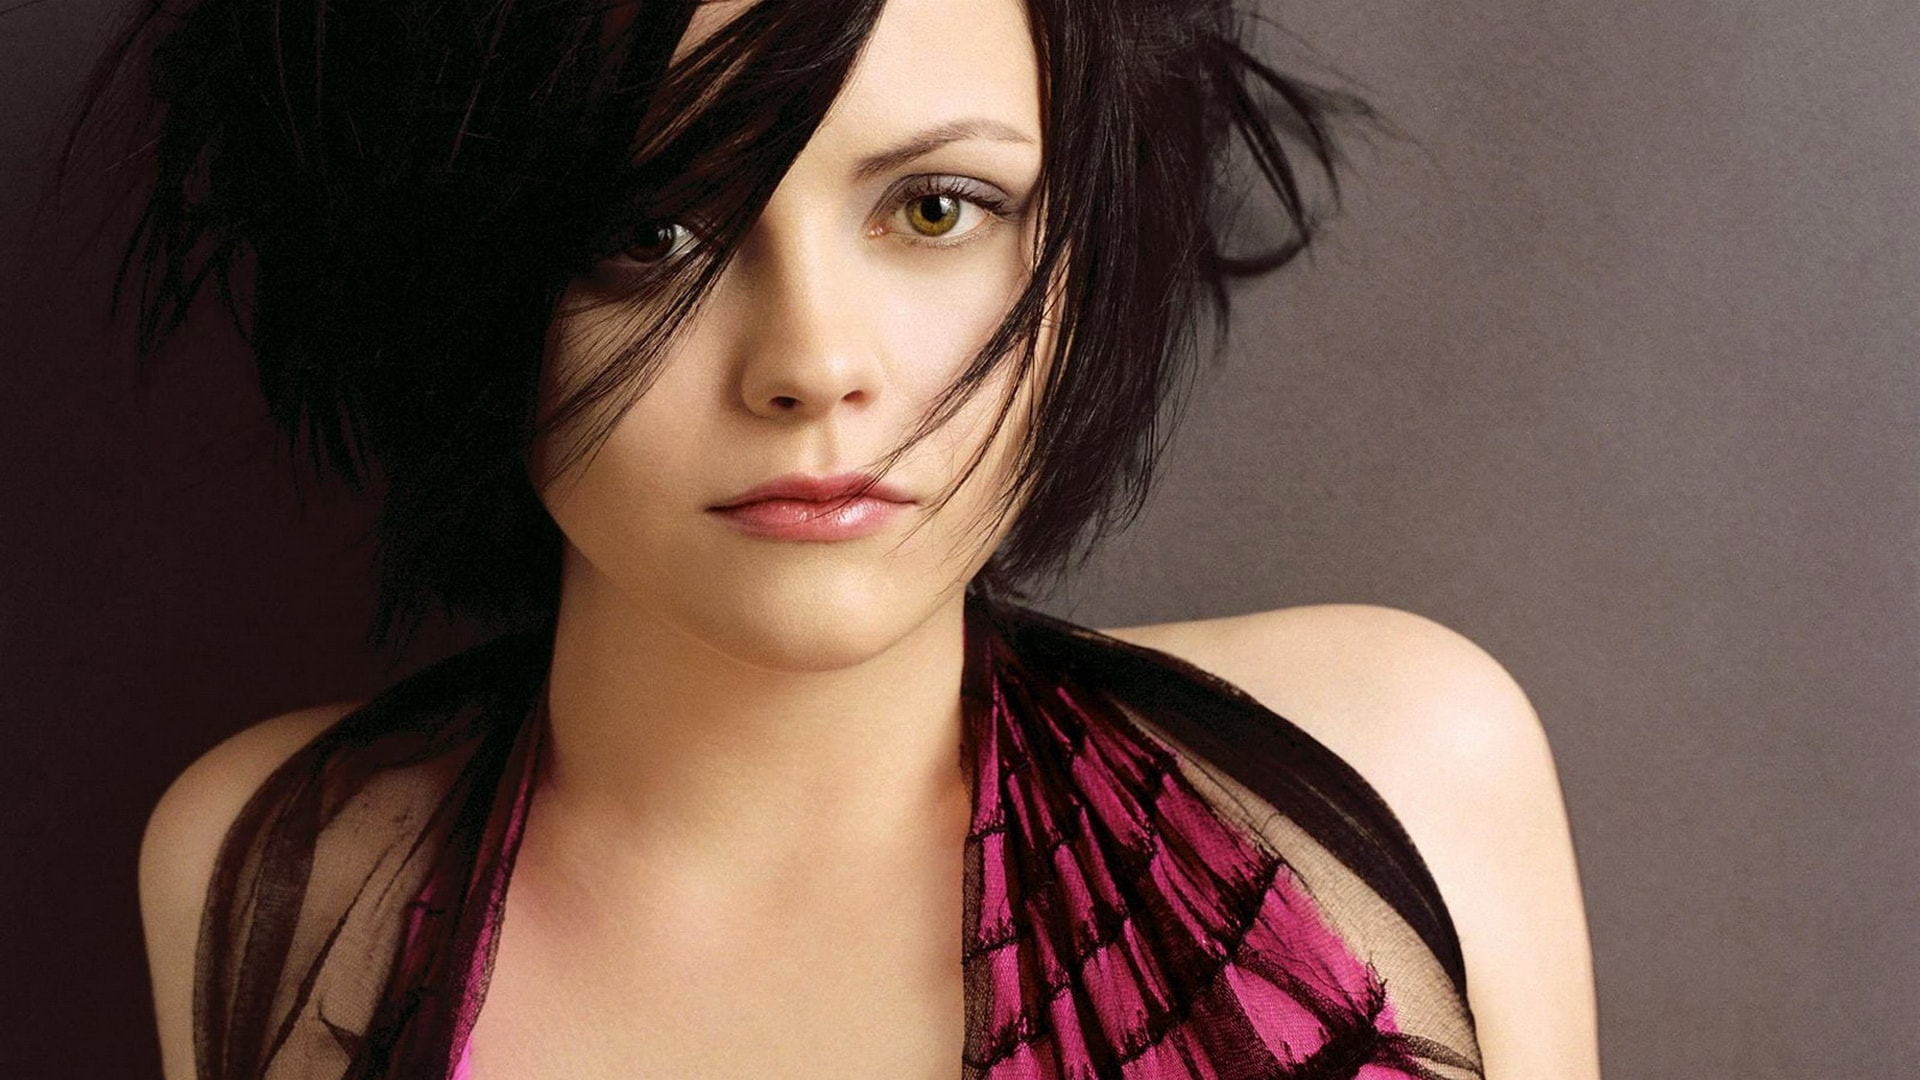 Christina Ricci Widescreen for desktop